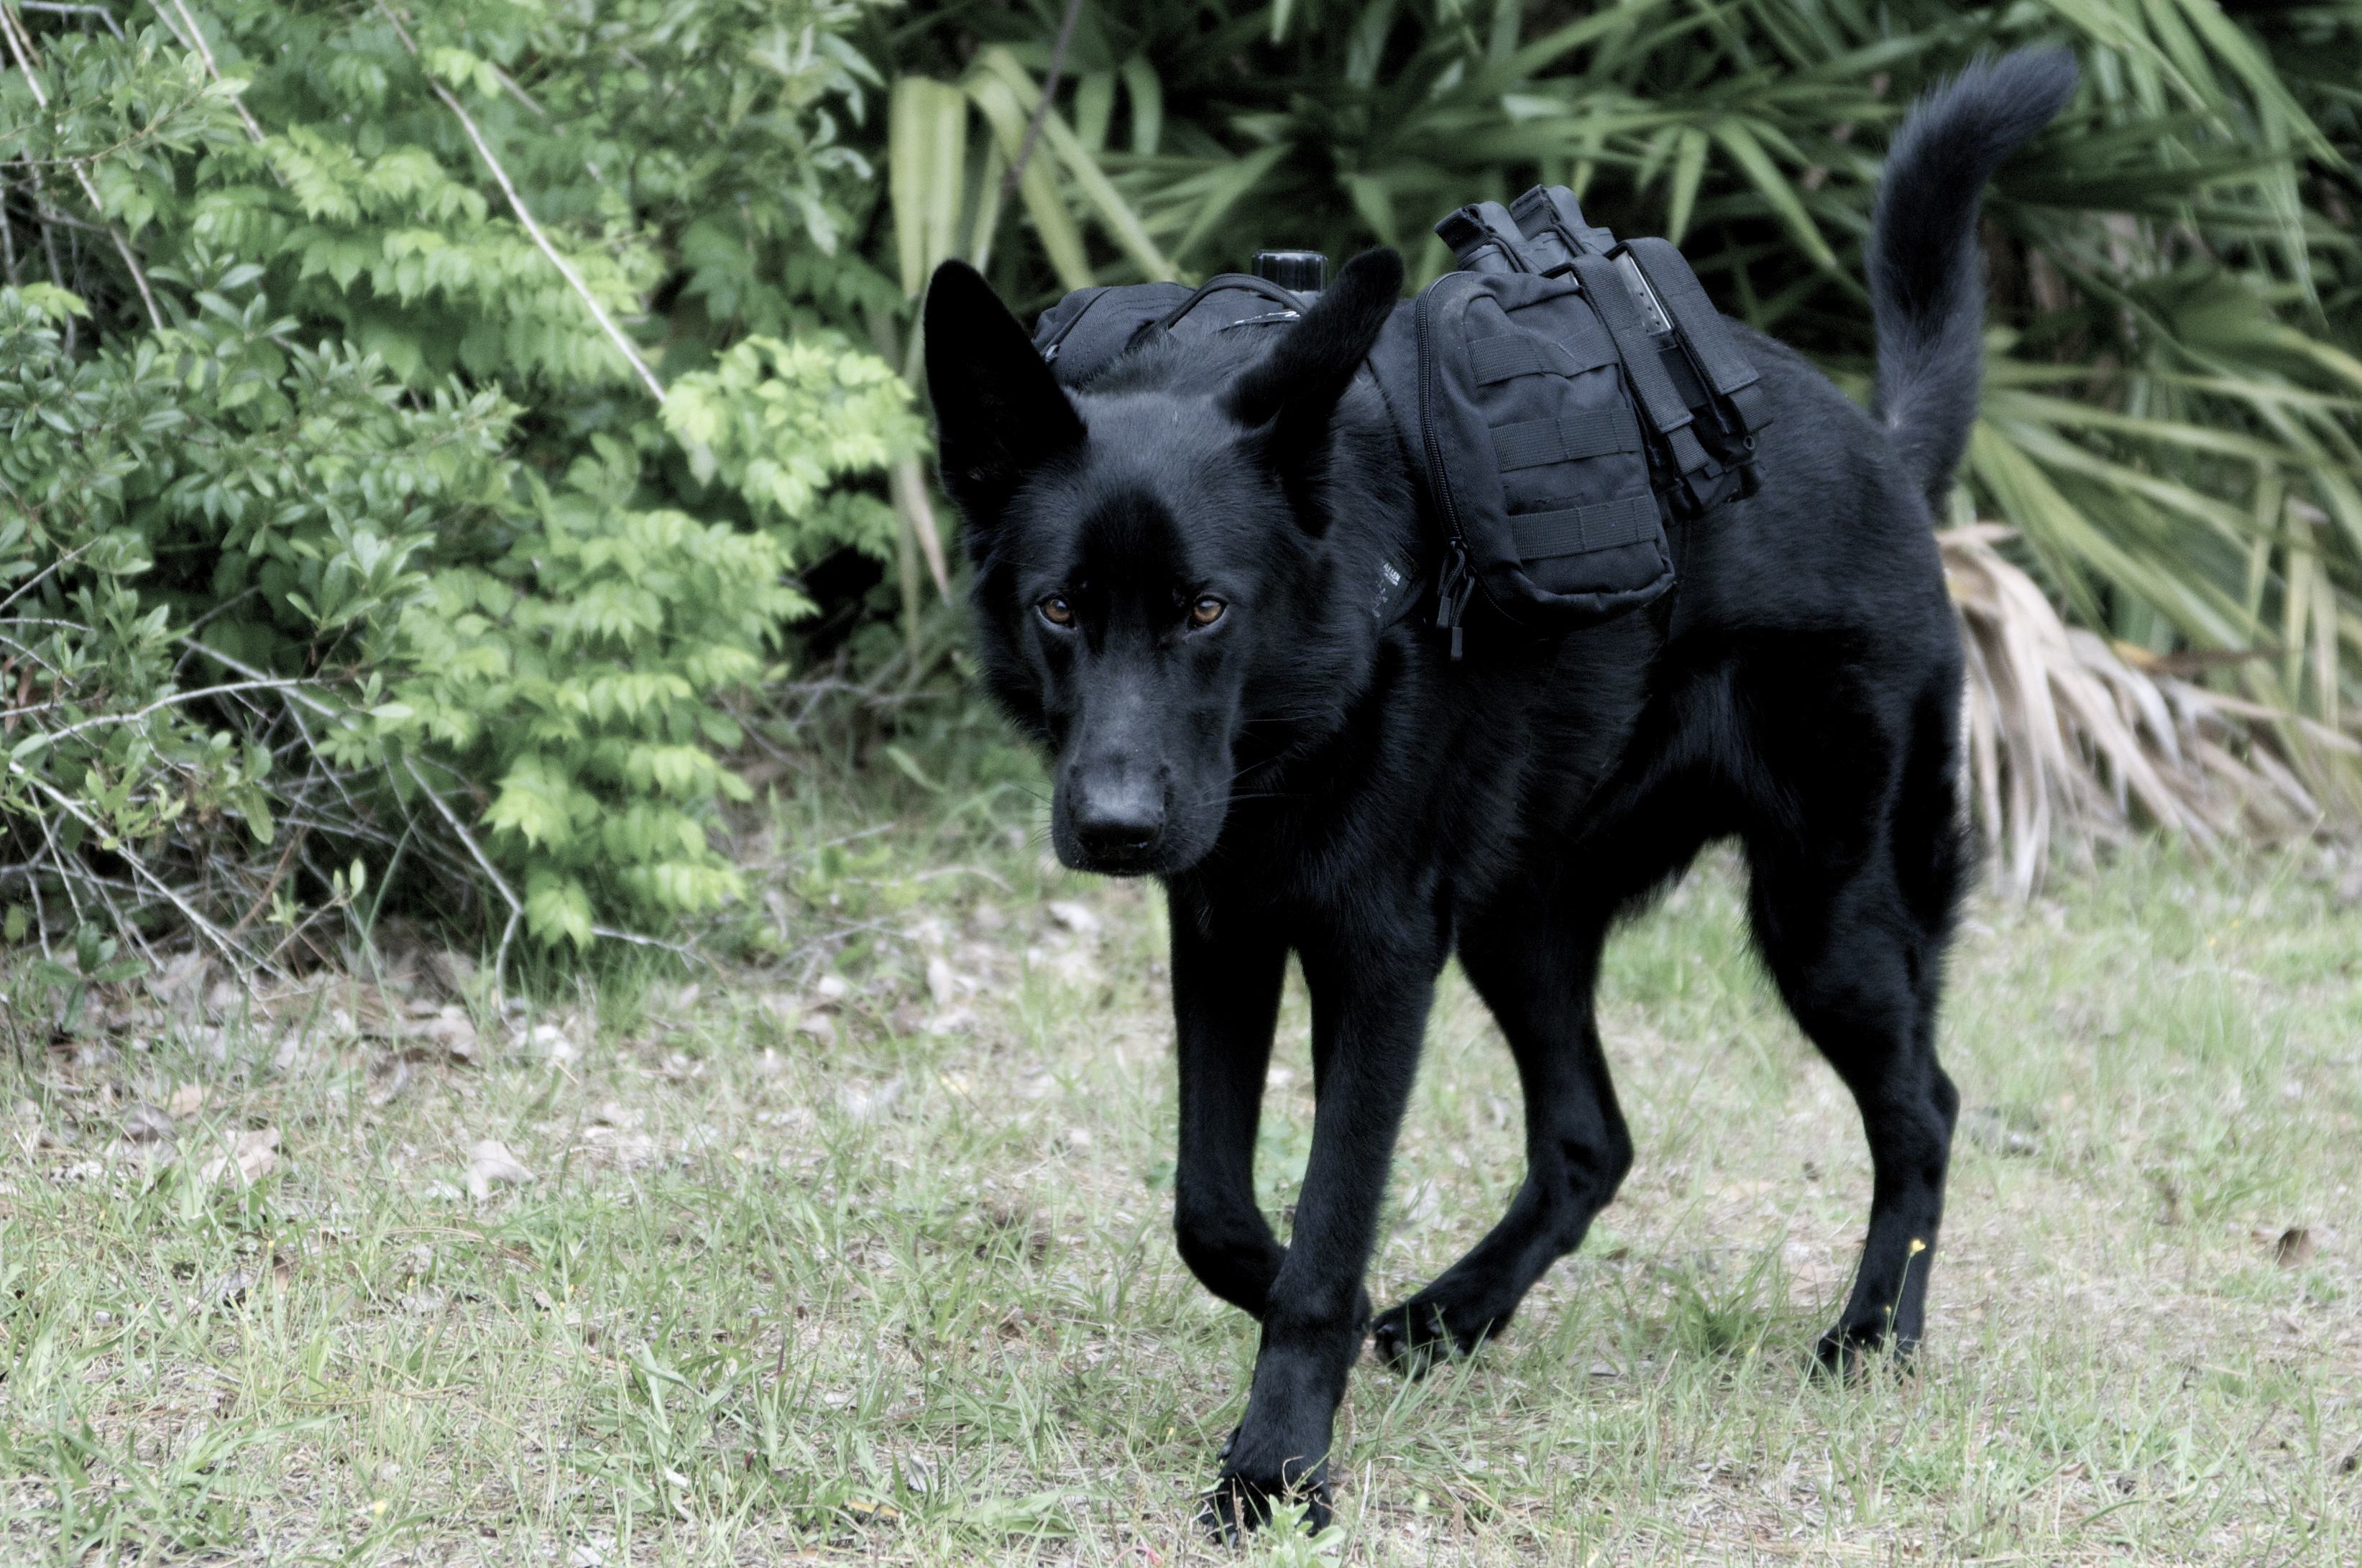 Tactical K 9 Training Tips For Militia Dogs together with 281834100276 in addition Cynology War Labs Products Go On Sale Monday as well 201431573064 as well 131630452823. on tactical dog vest harness